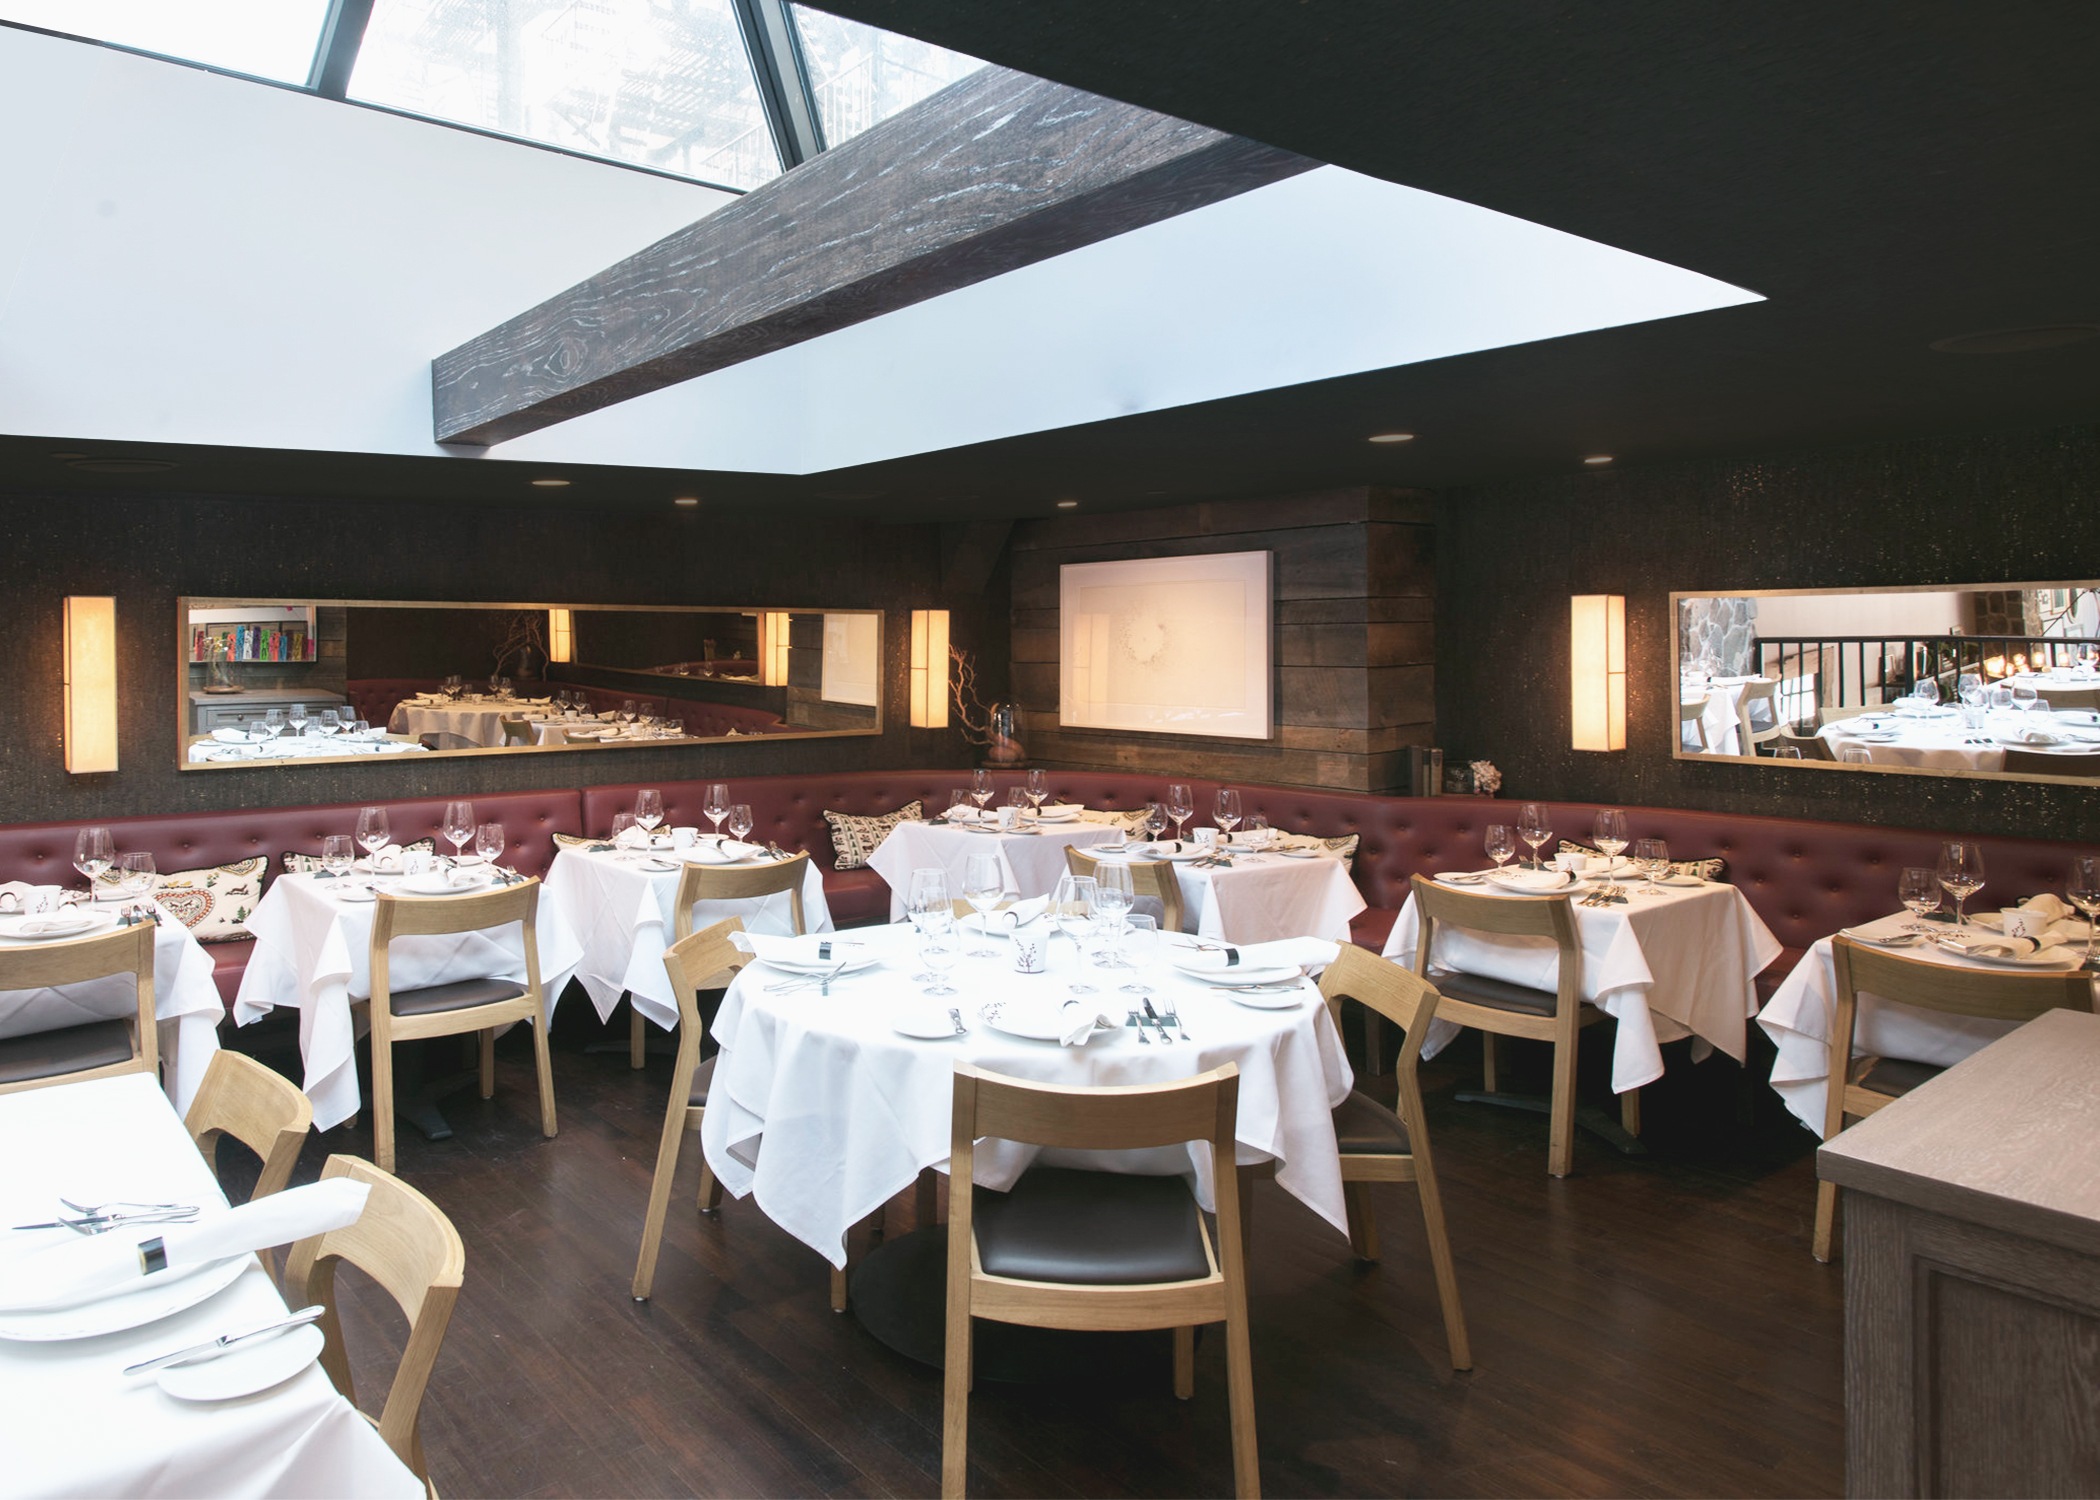 The Upstairs Dining Space Features a Large Skylight and Dark Cork Wall-Covering Flecked with Gold, both Improving Acoustics and Softening the Space